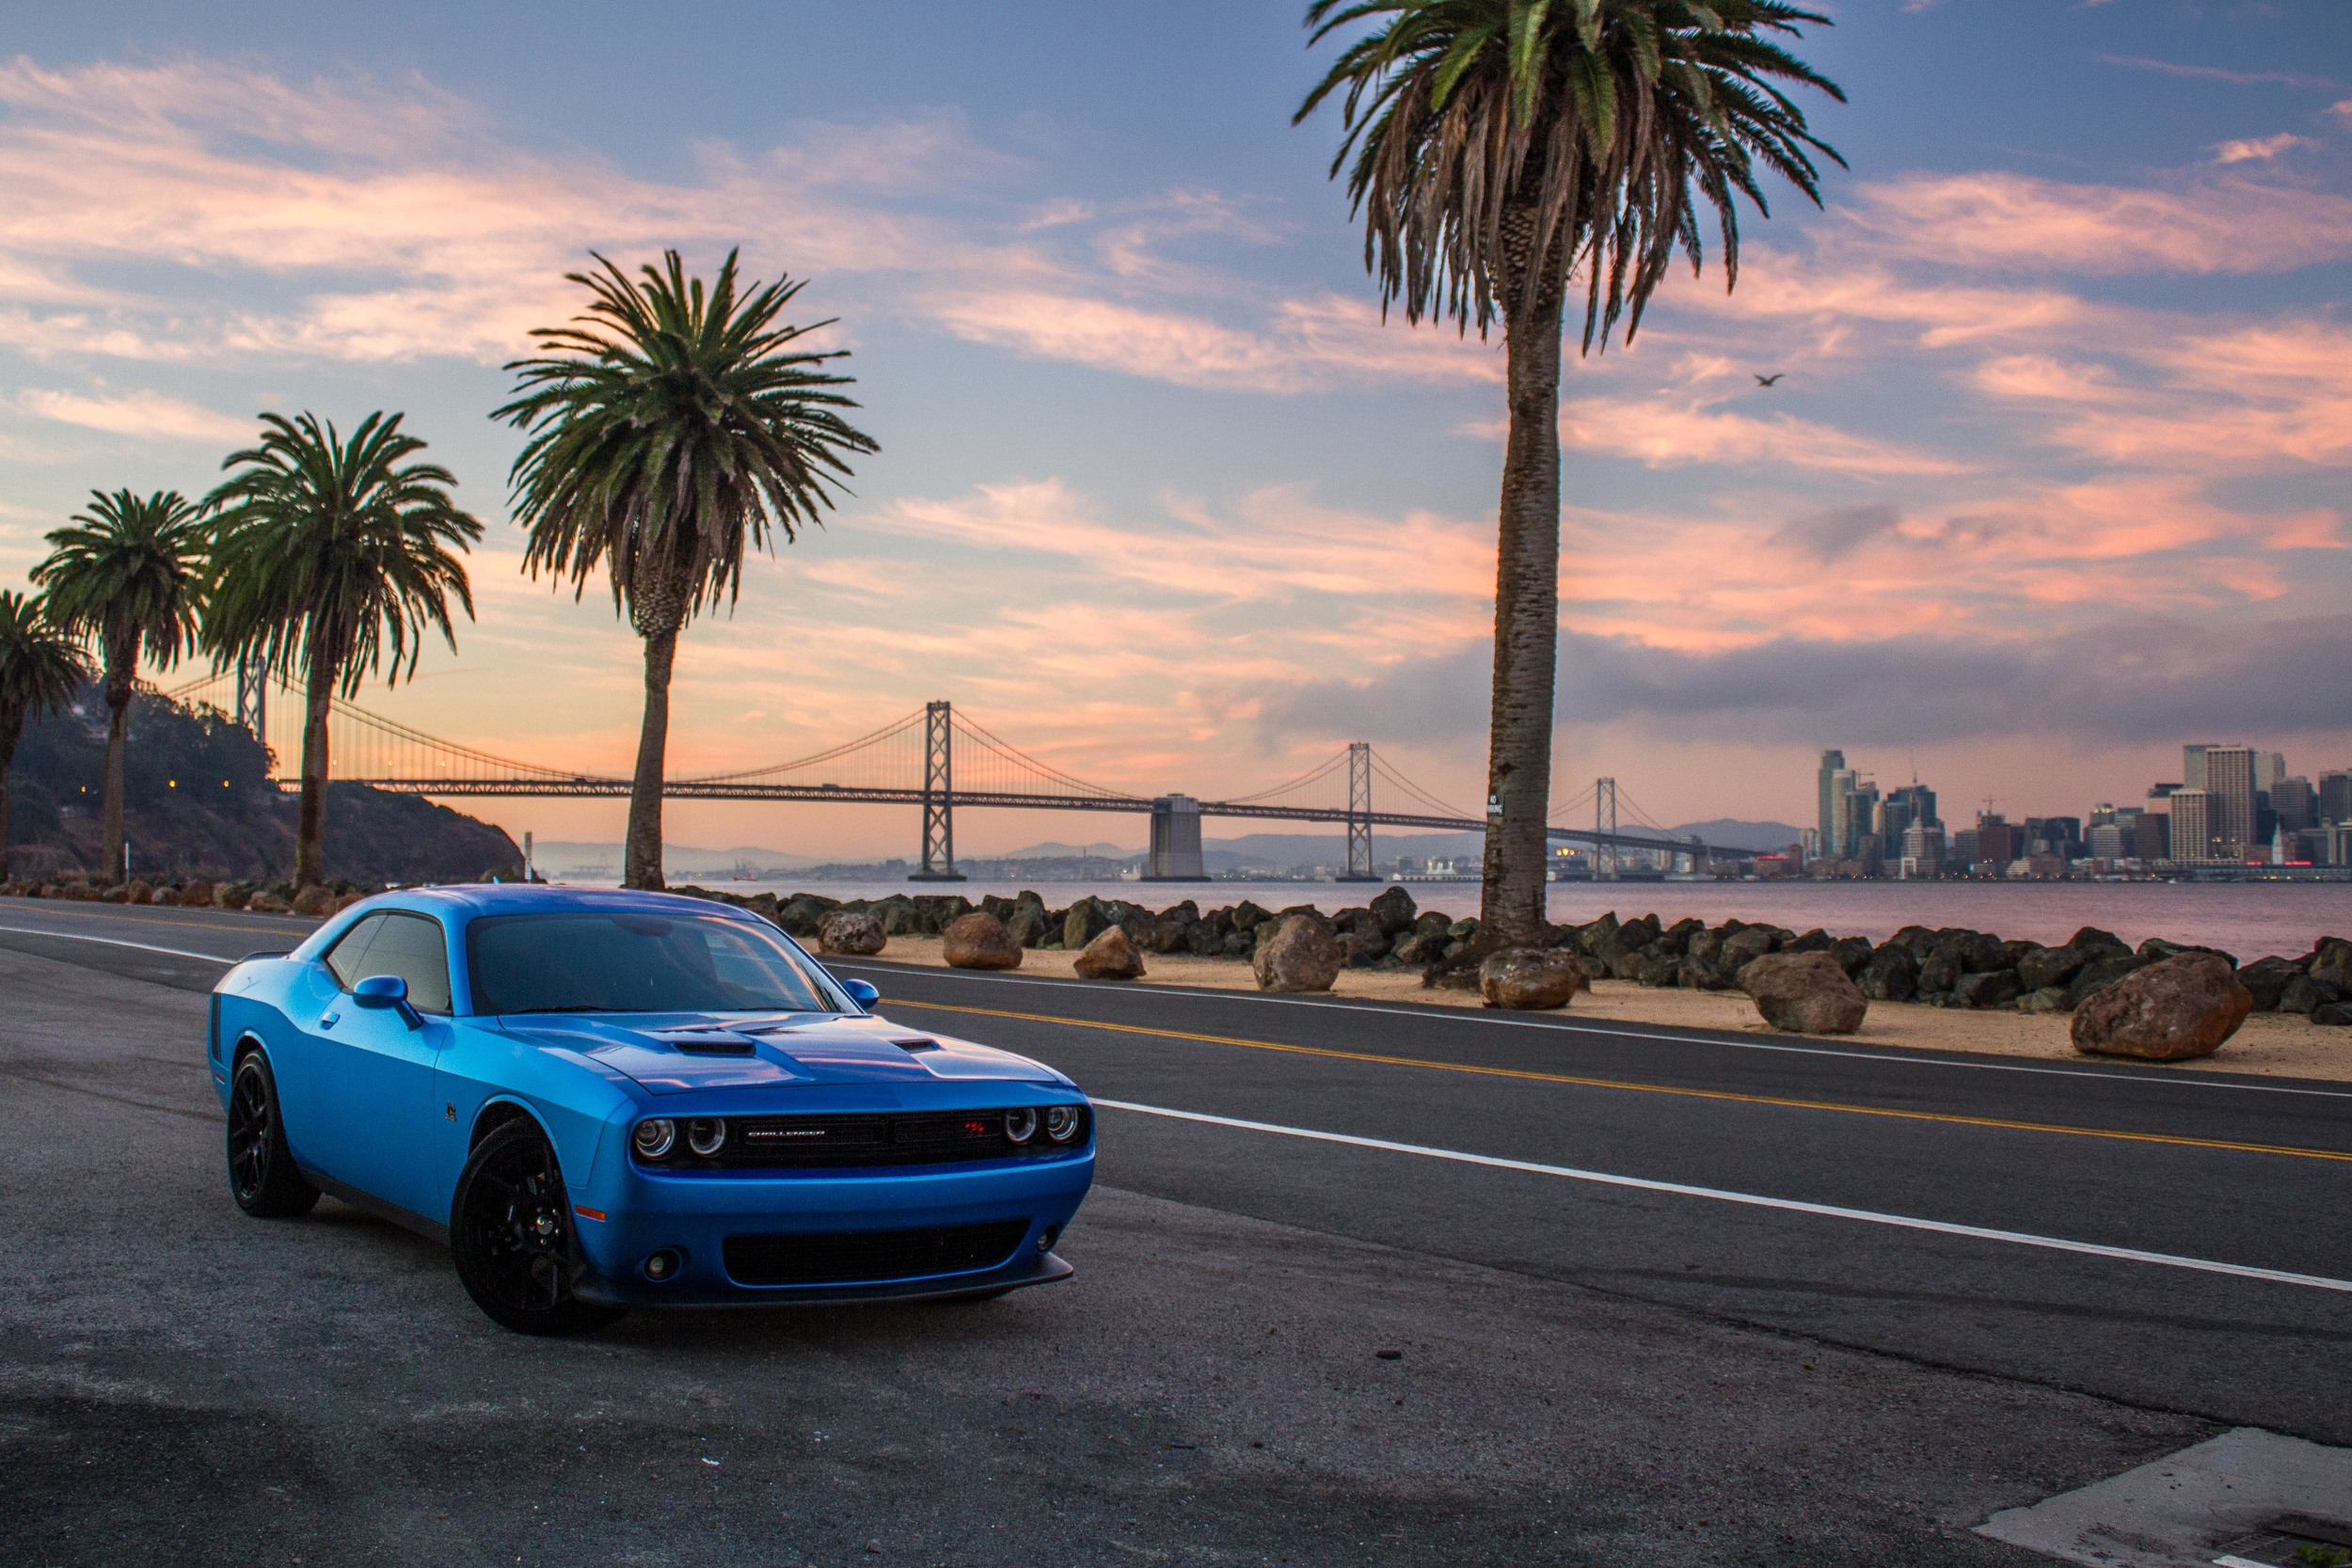 Dodge Challenger R/T parked on Avenue Of The Palms during sunrise.